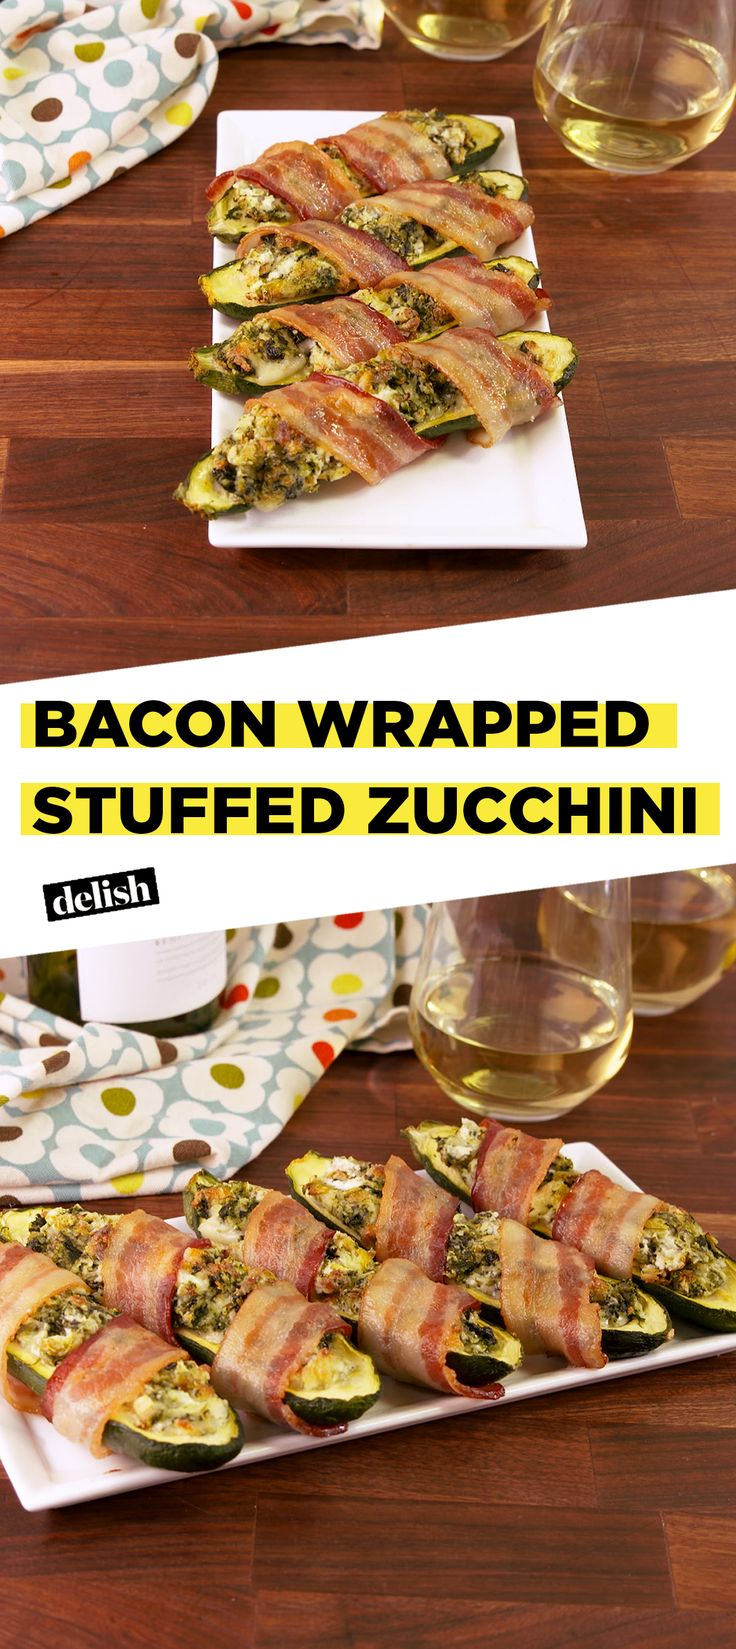 Bacon Wrapped STUFFED Zucchini is the low-carb dinner of your dreams. Get the recipe at Delish.com. #bacon #zucchini #cheese #creamcheese #lowcarb #recipe #easyrecipe #delish